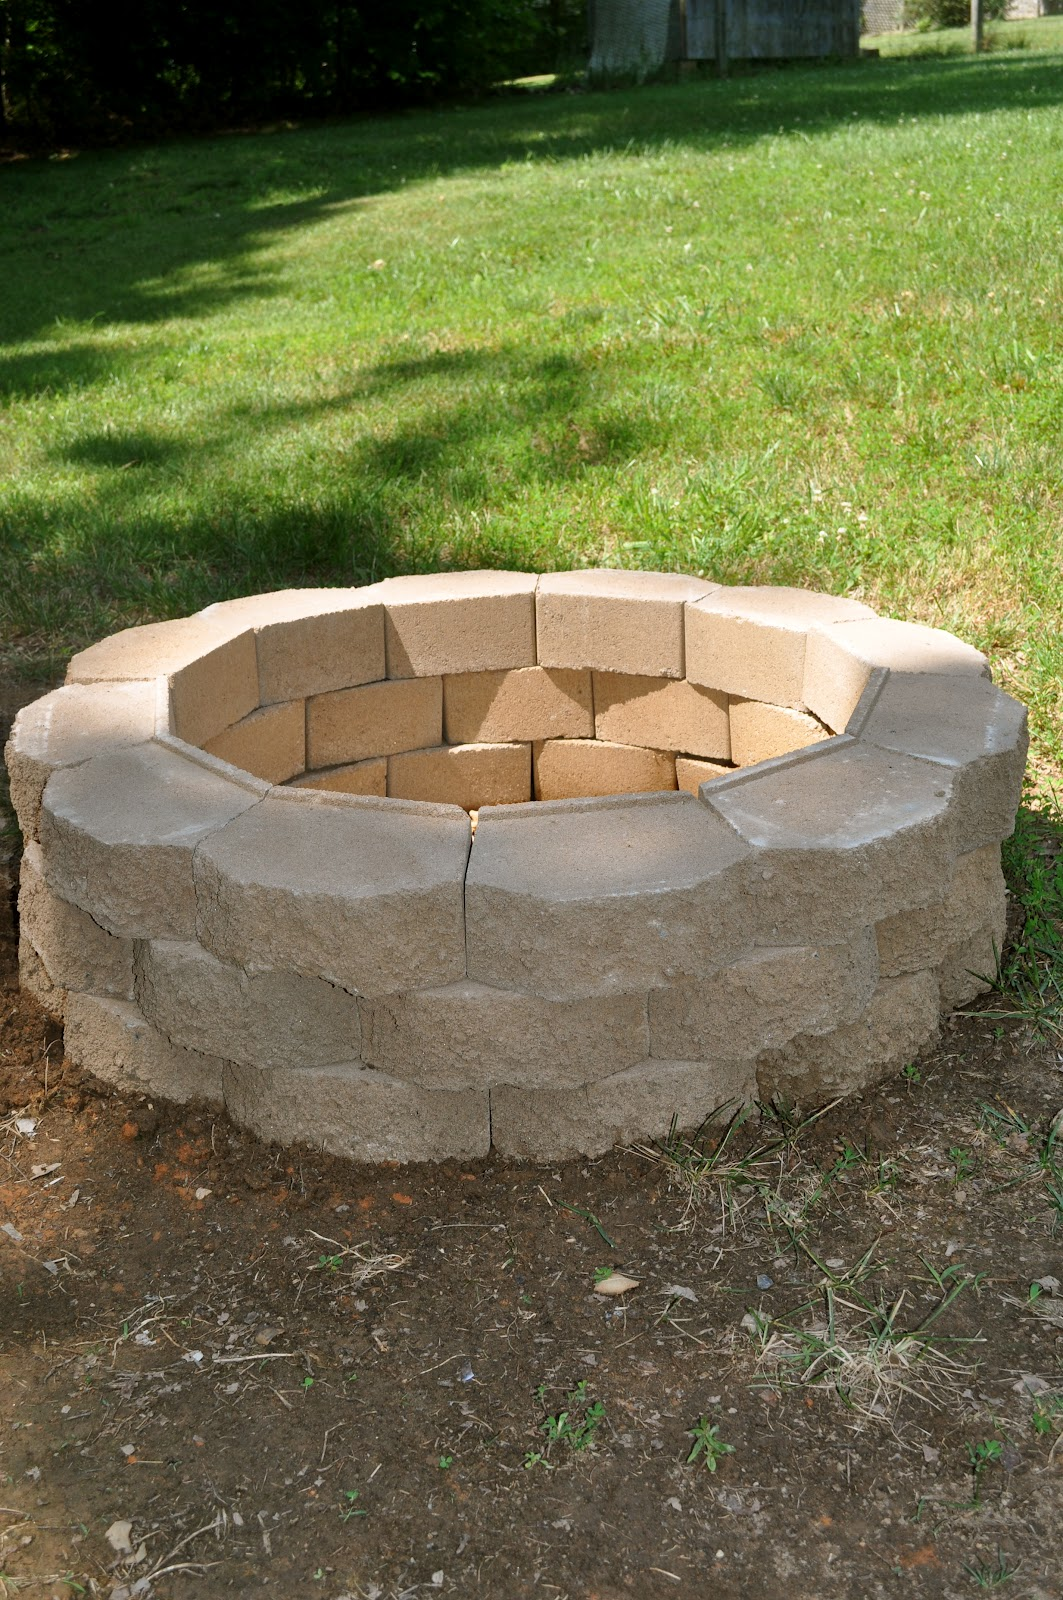 Diy brick fire pit is not as difficult as you may realize. However